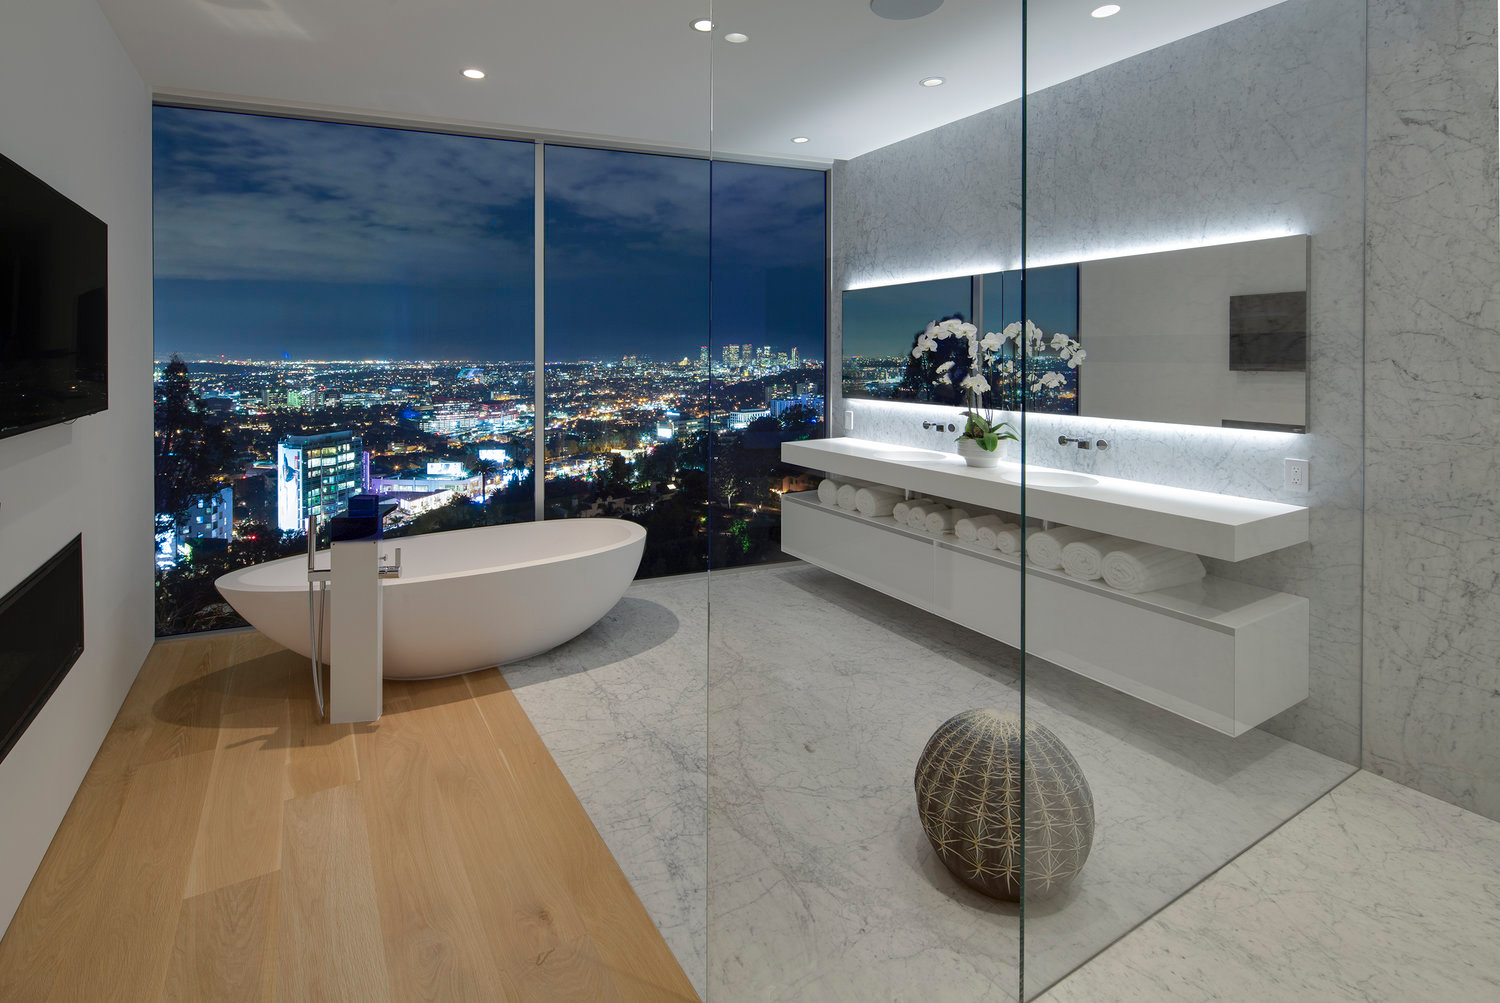 wall to wall glass enclosed bathroom